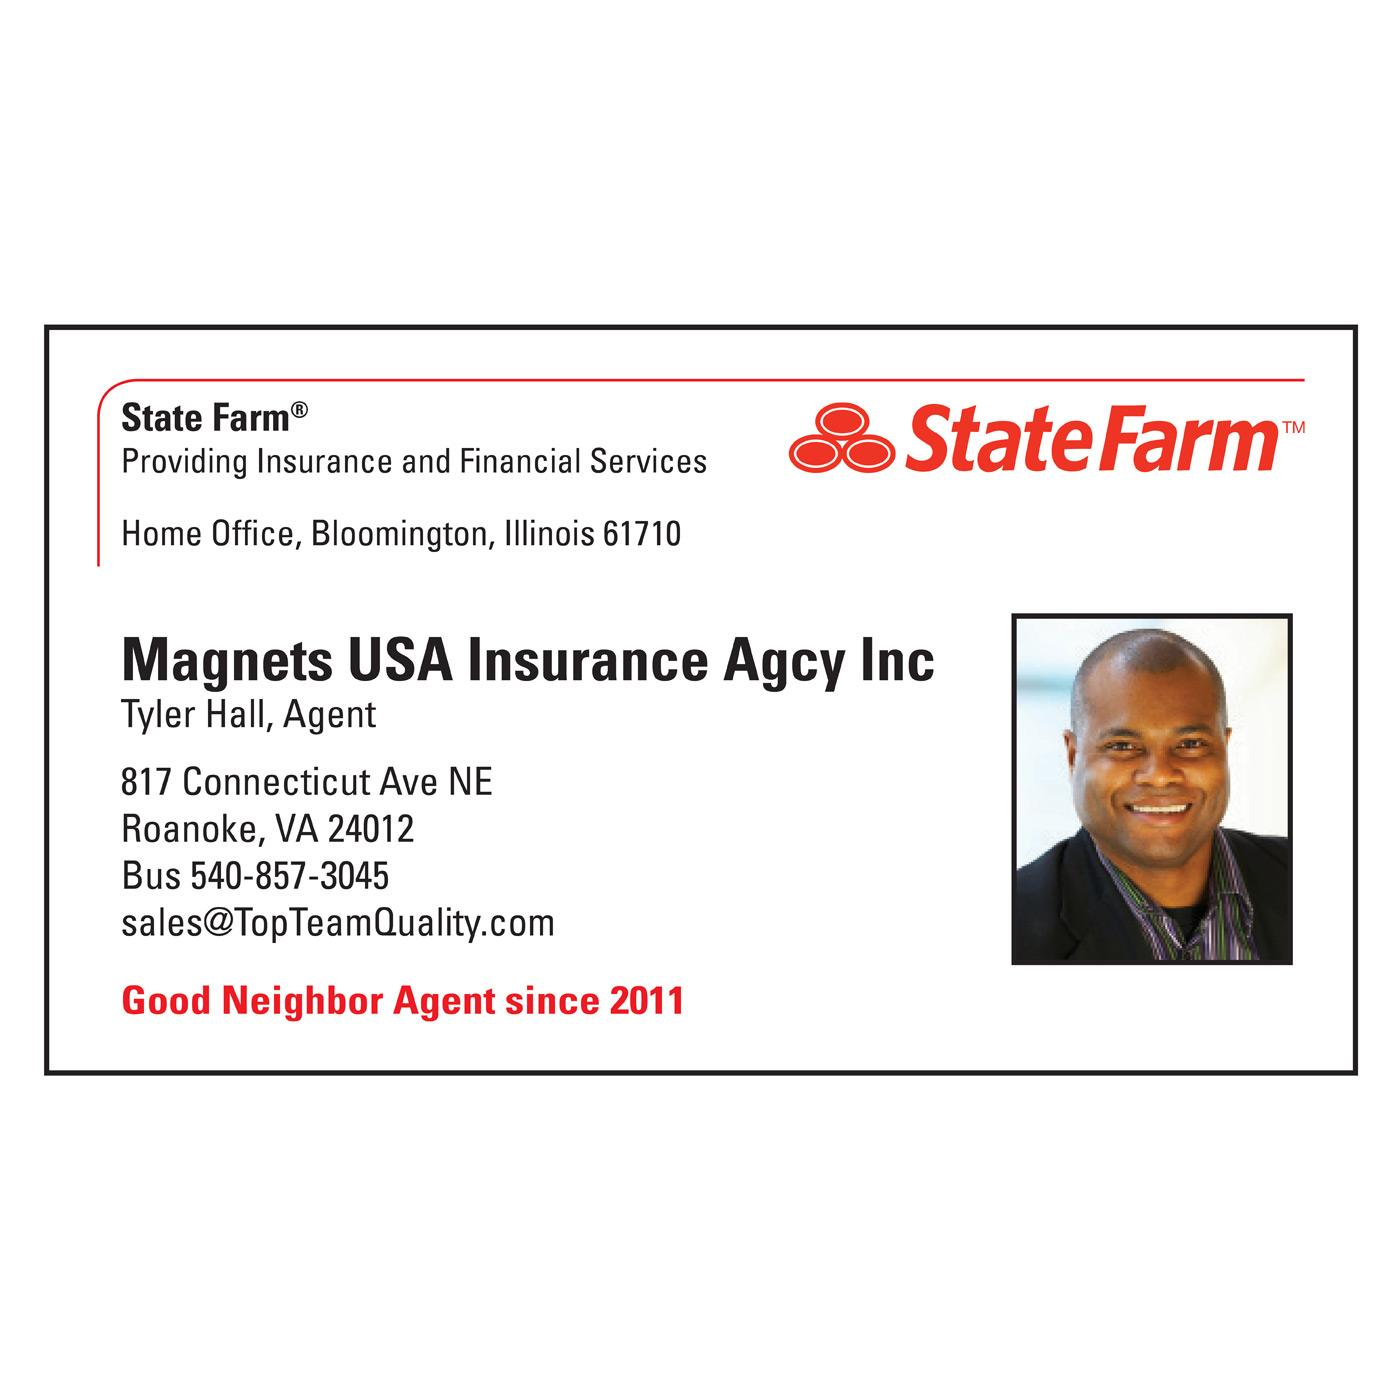 State Farm paper business card